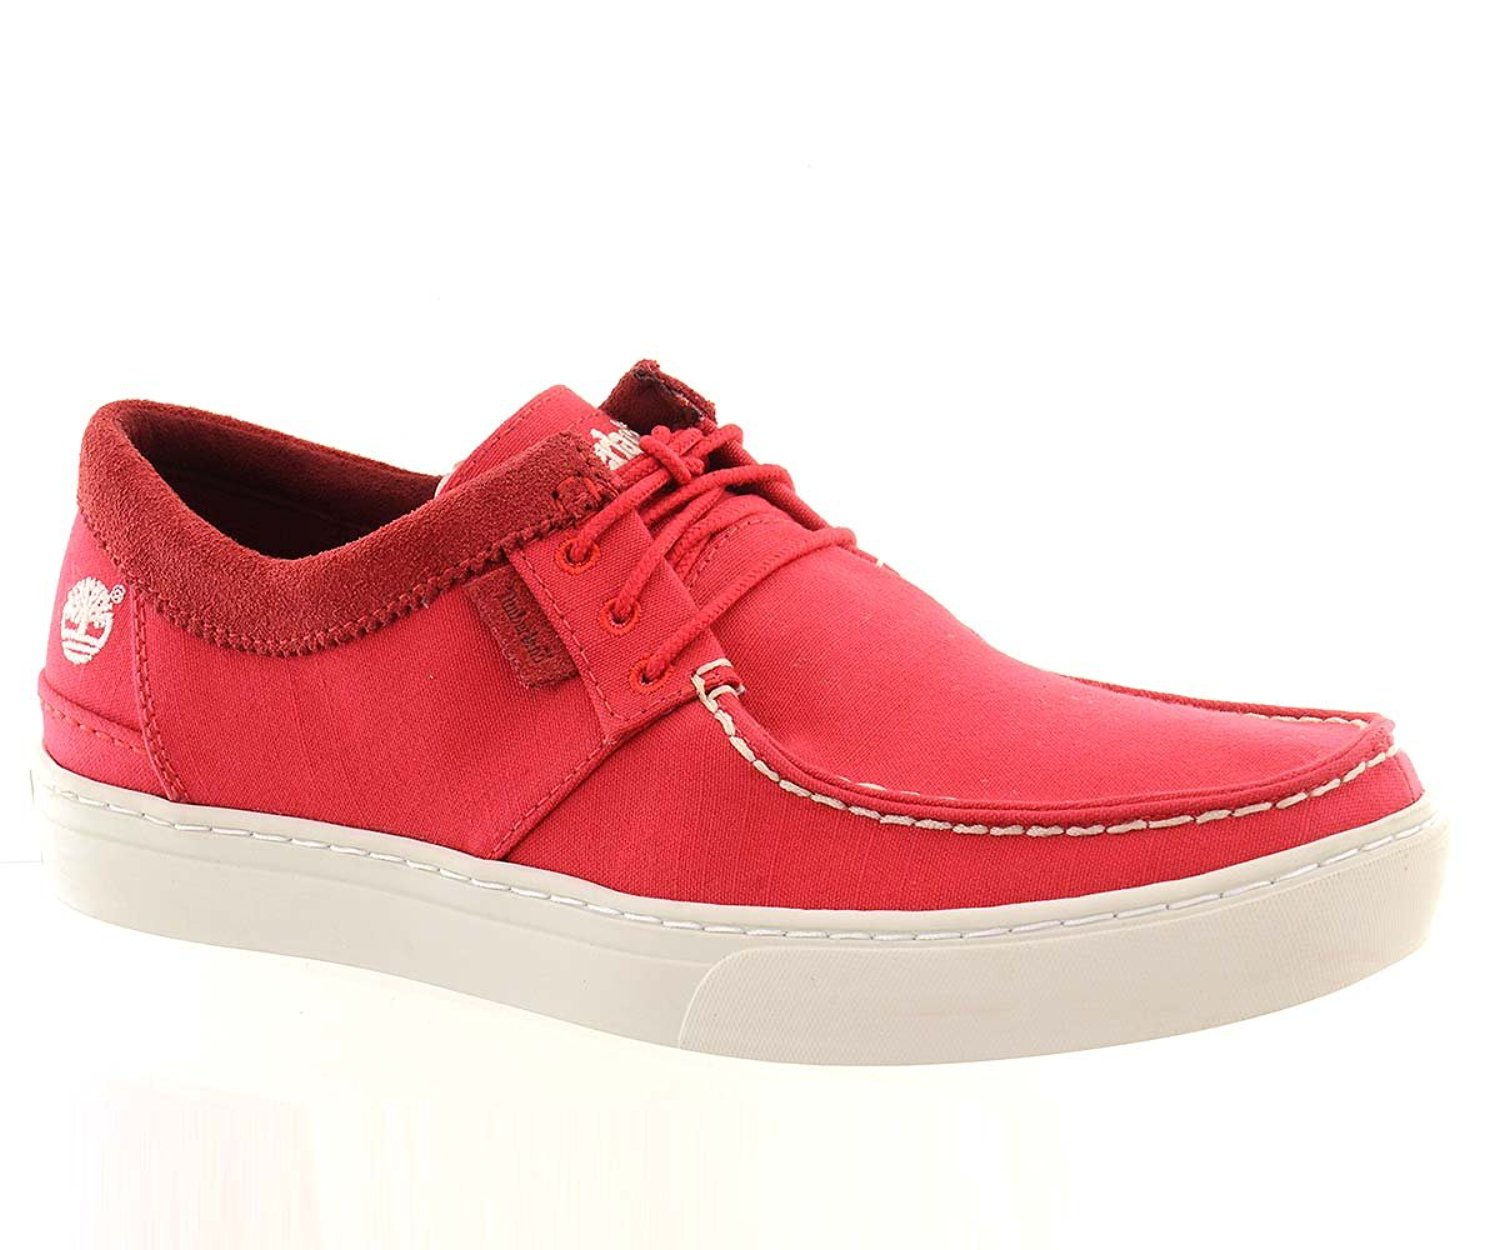 e4563b4297cf Get Quotations · Timberland Mens Casual Boat Shoes 23183 Red Canvas